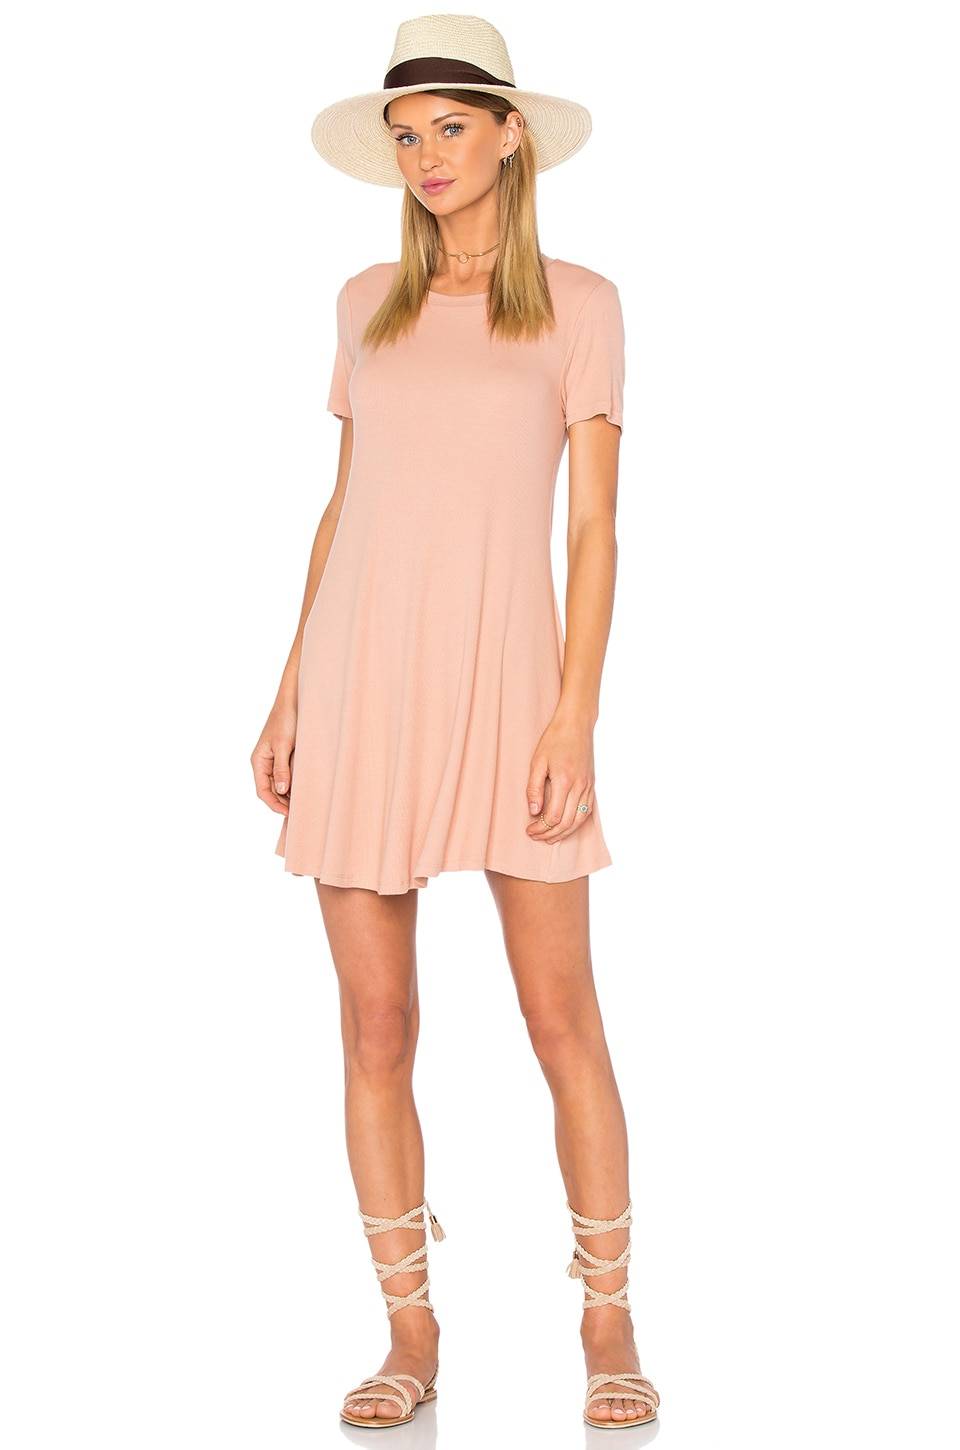 Privacy Please Caldwell Dress in Nude